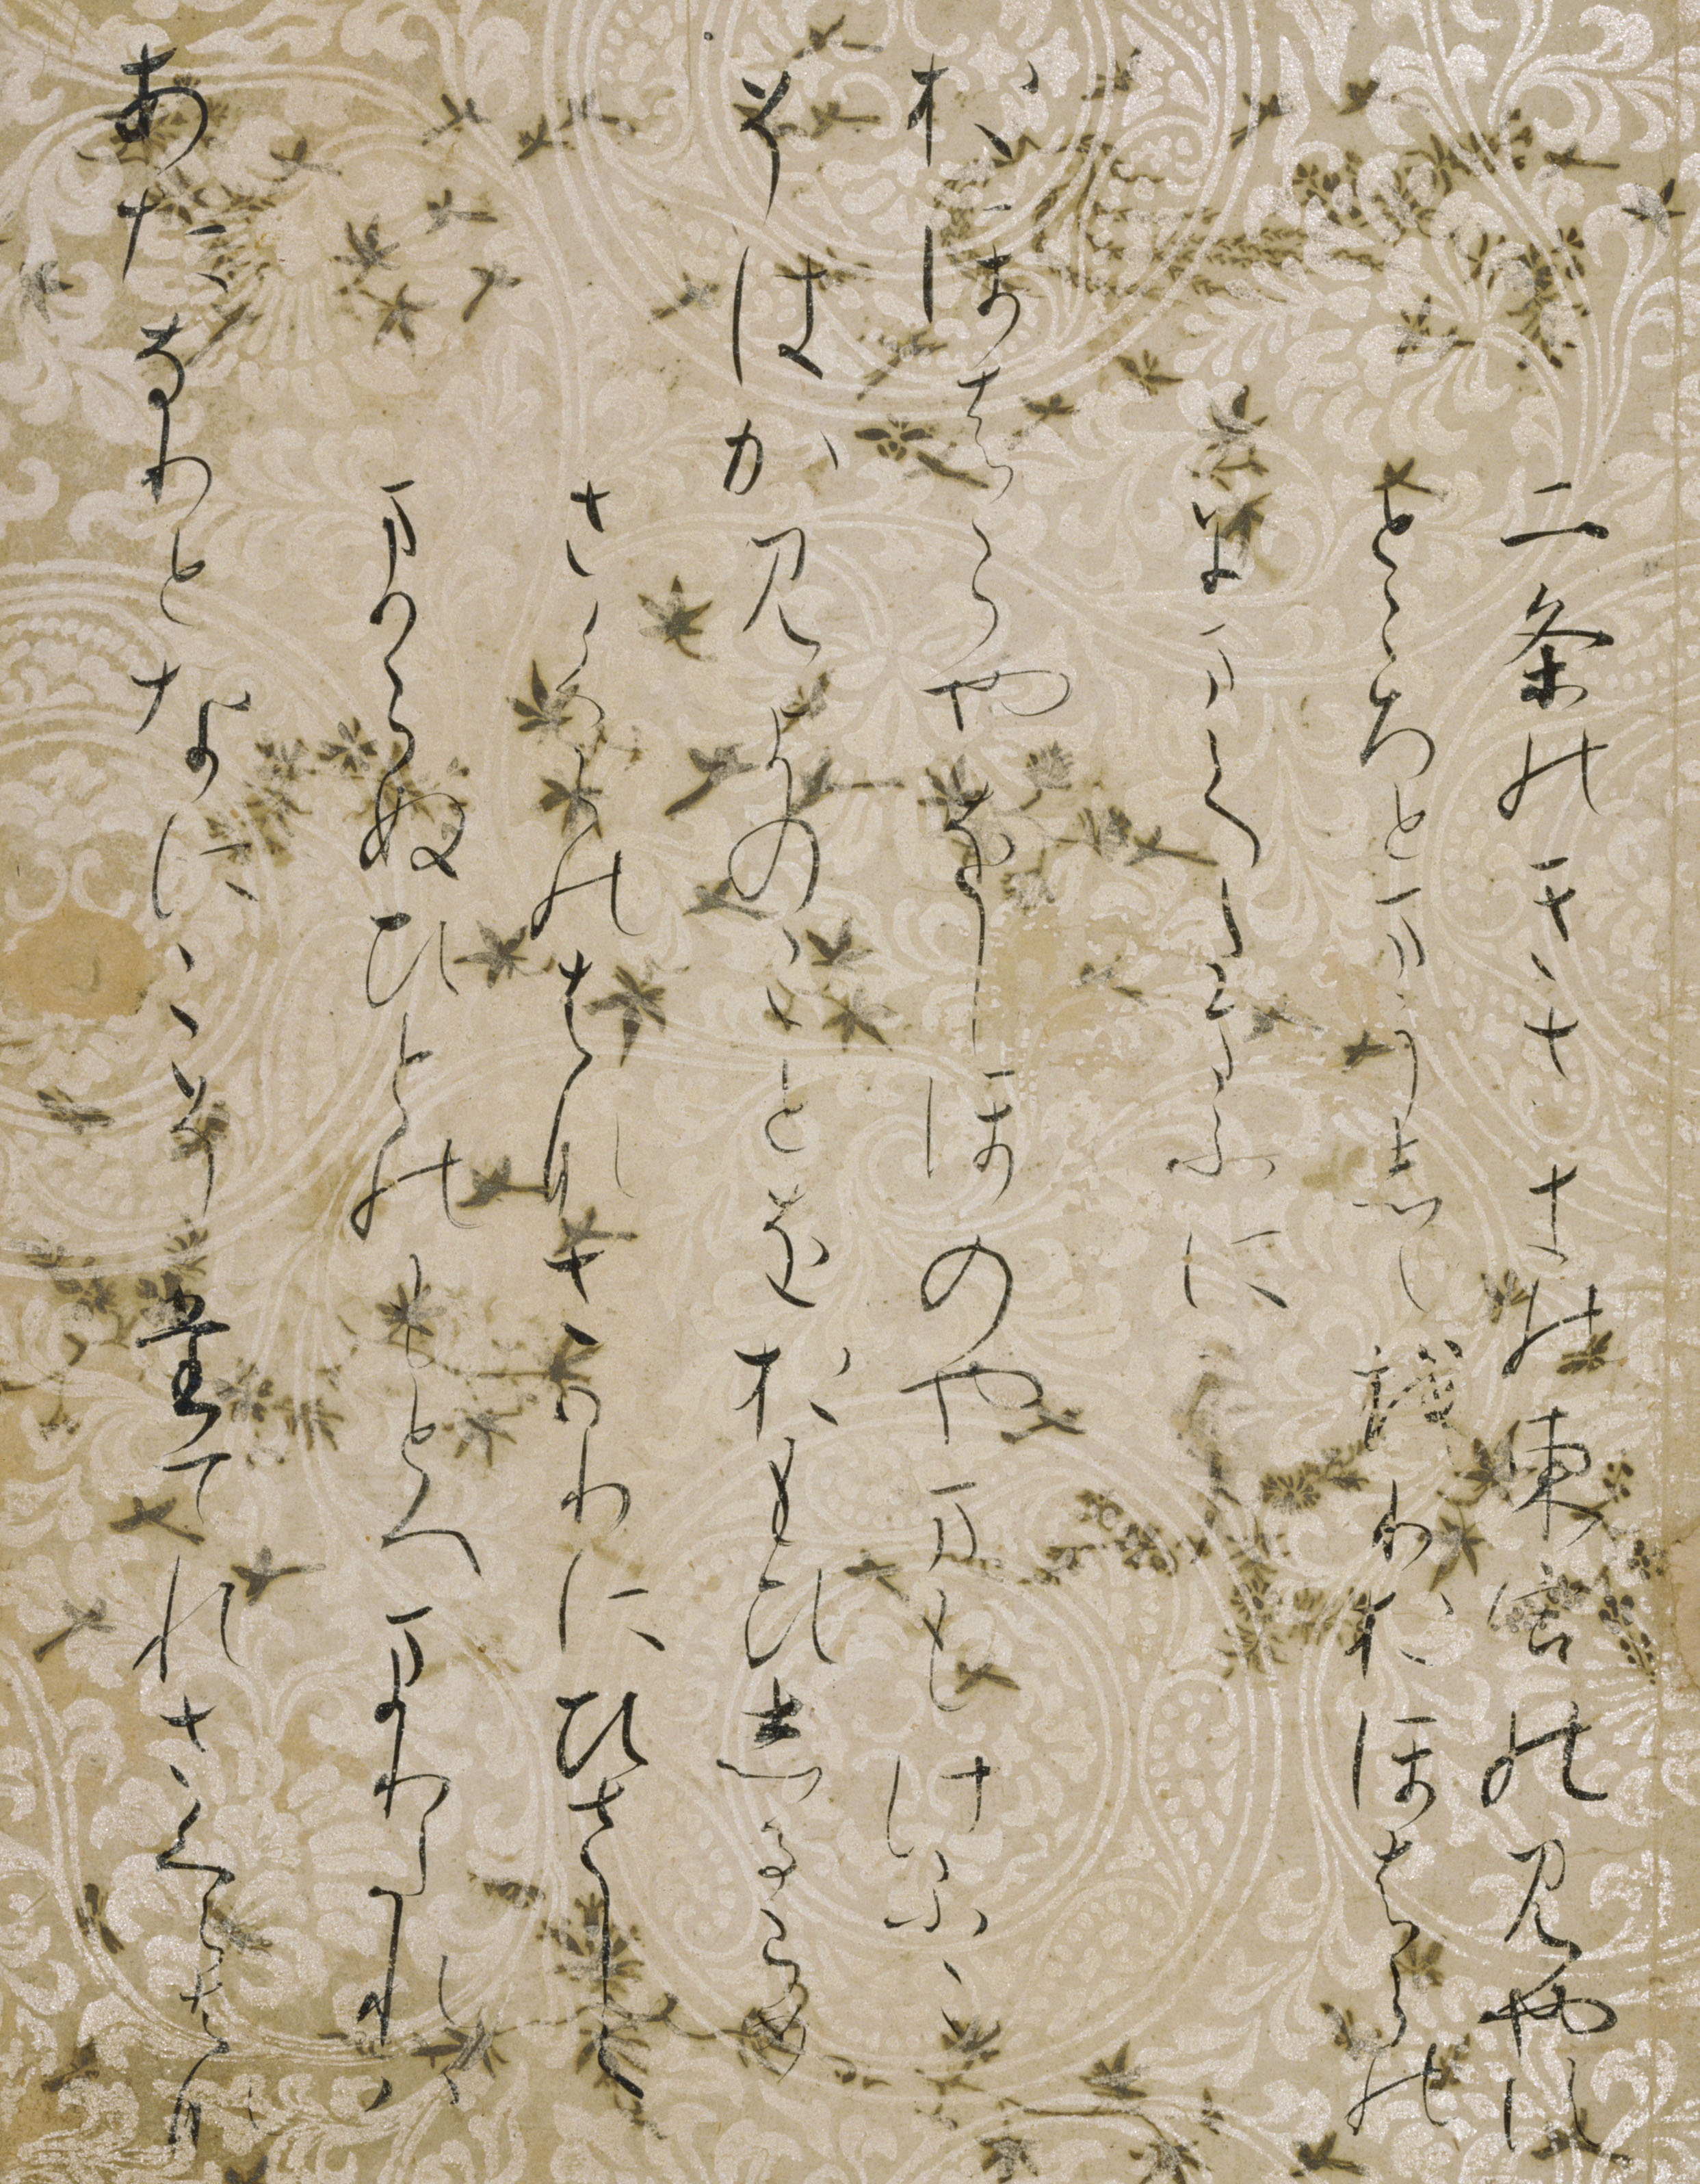 'Ogata-gire' (fragment from poetry anthology) (12th Century) | NEZUMUSEUM